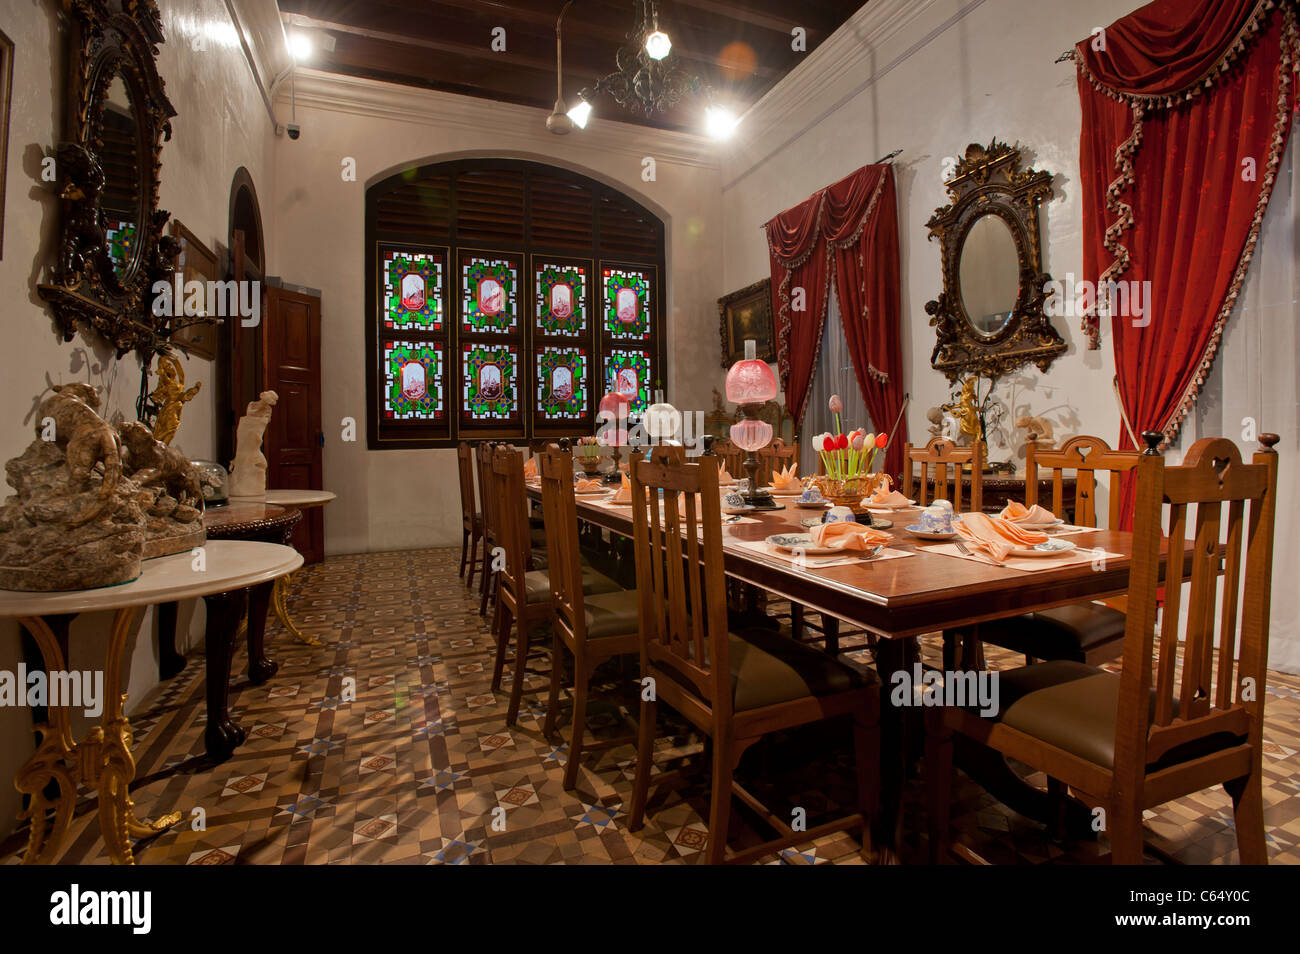 Dining Room in the Peranakan Mansion, George Town, Penang Malaysia - Stock Image